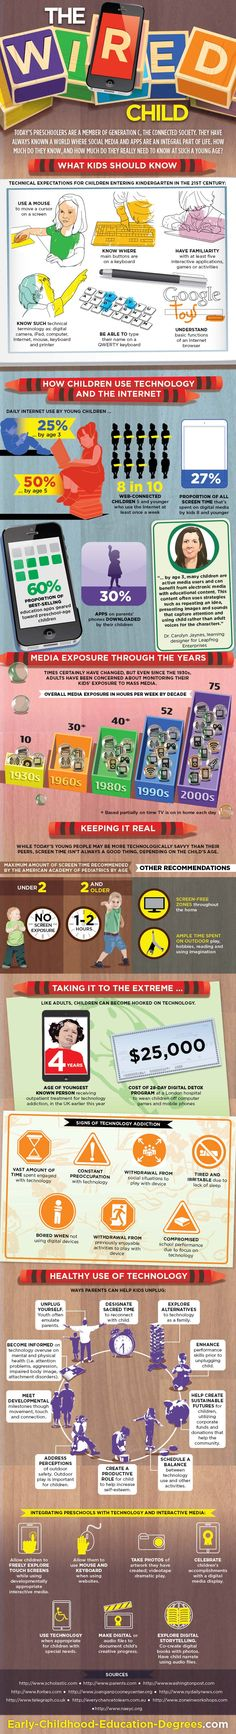 #INFOgraphic > Digital Children: Today's preschool children experience unprecedented exposure to new media and technologies involved. Though technology literacy is becoming a prerequisite even from a child's early school years, experts alert that parents should draw a red line before they start realizing the very... > http://infographicsmania.com/digital-children/?utm_source=Pinterest&utm_medium=INFOGRAPHICSMANIA&utm_campaign=SNAP